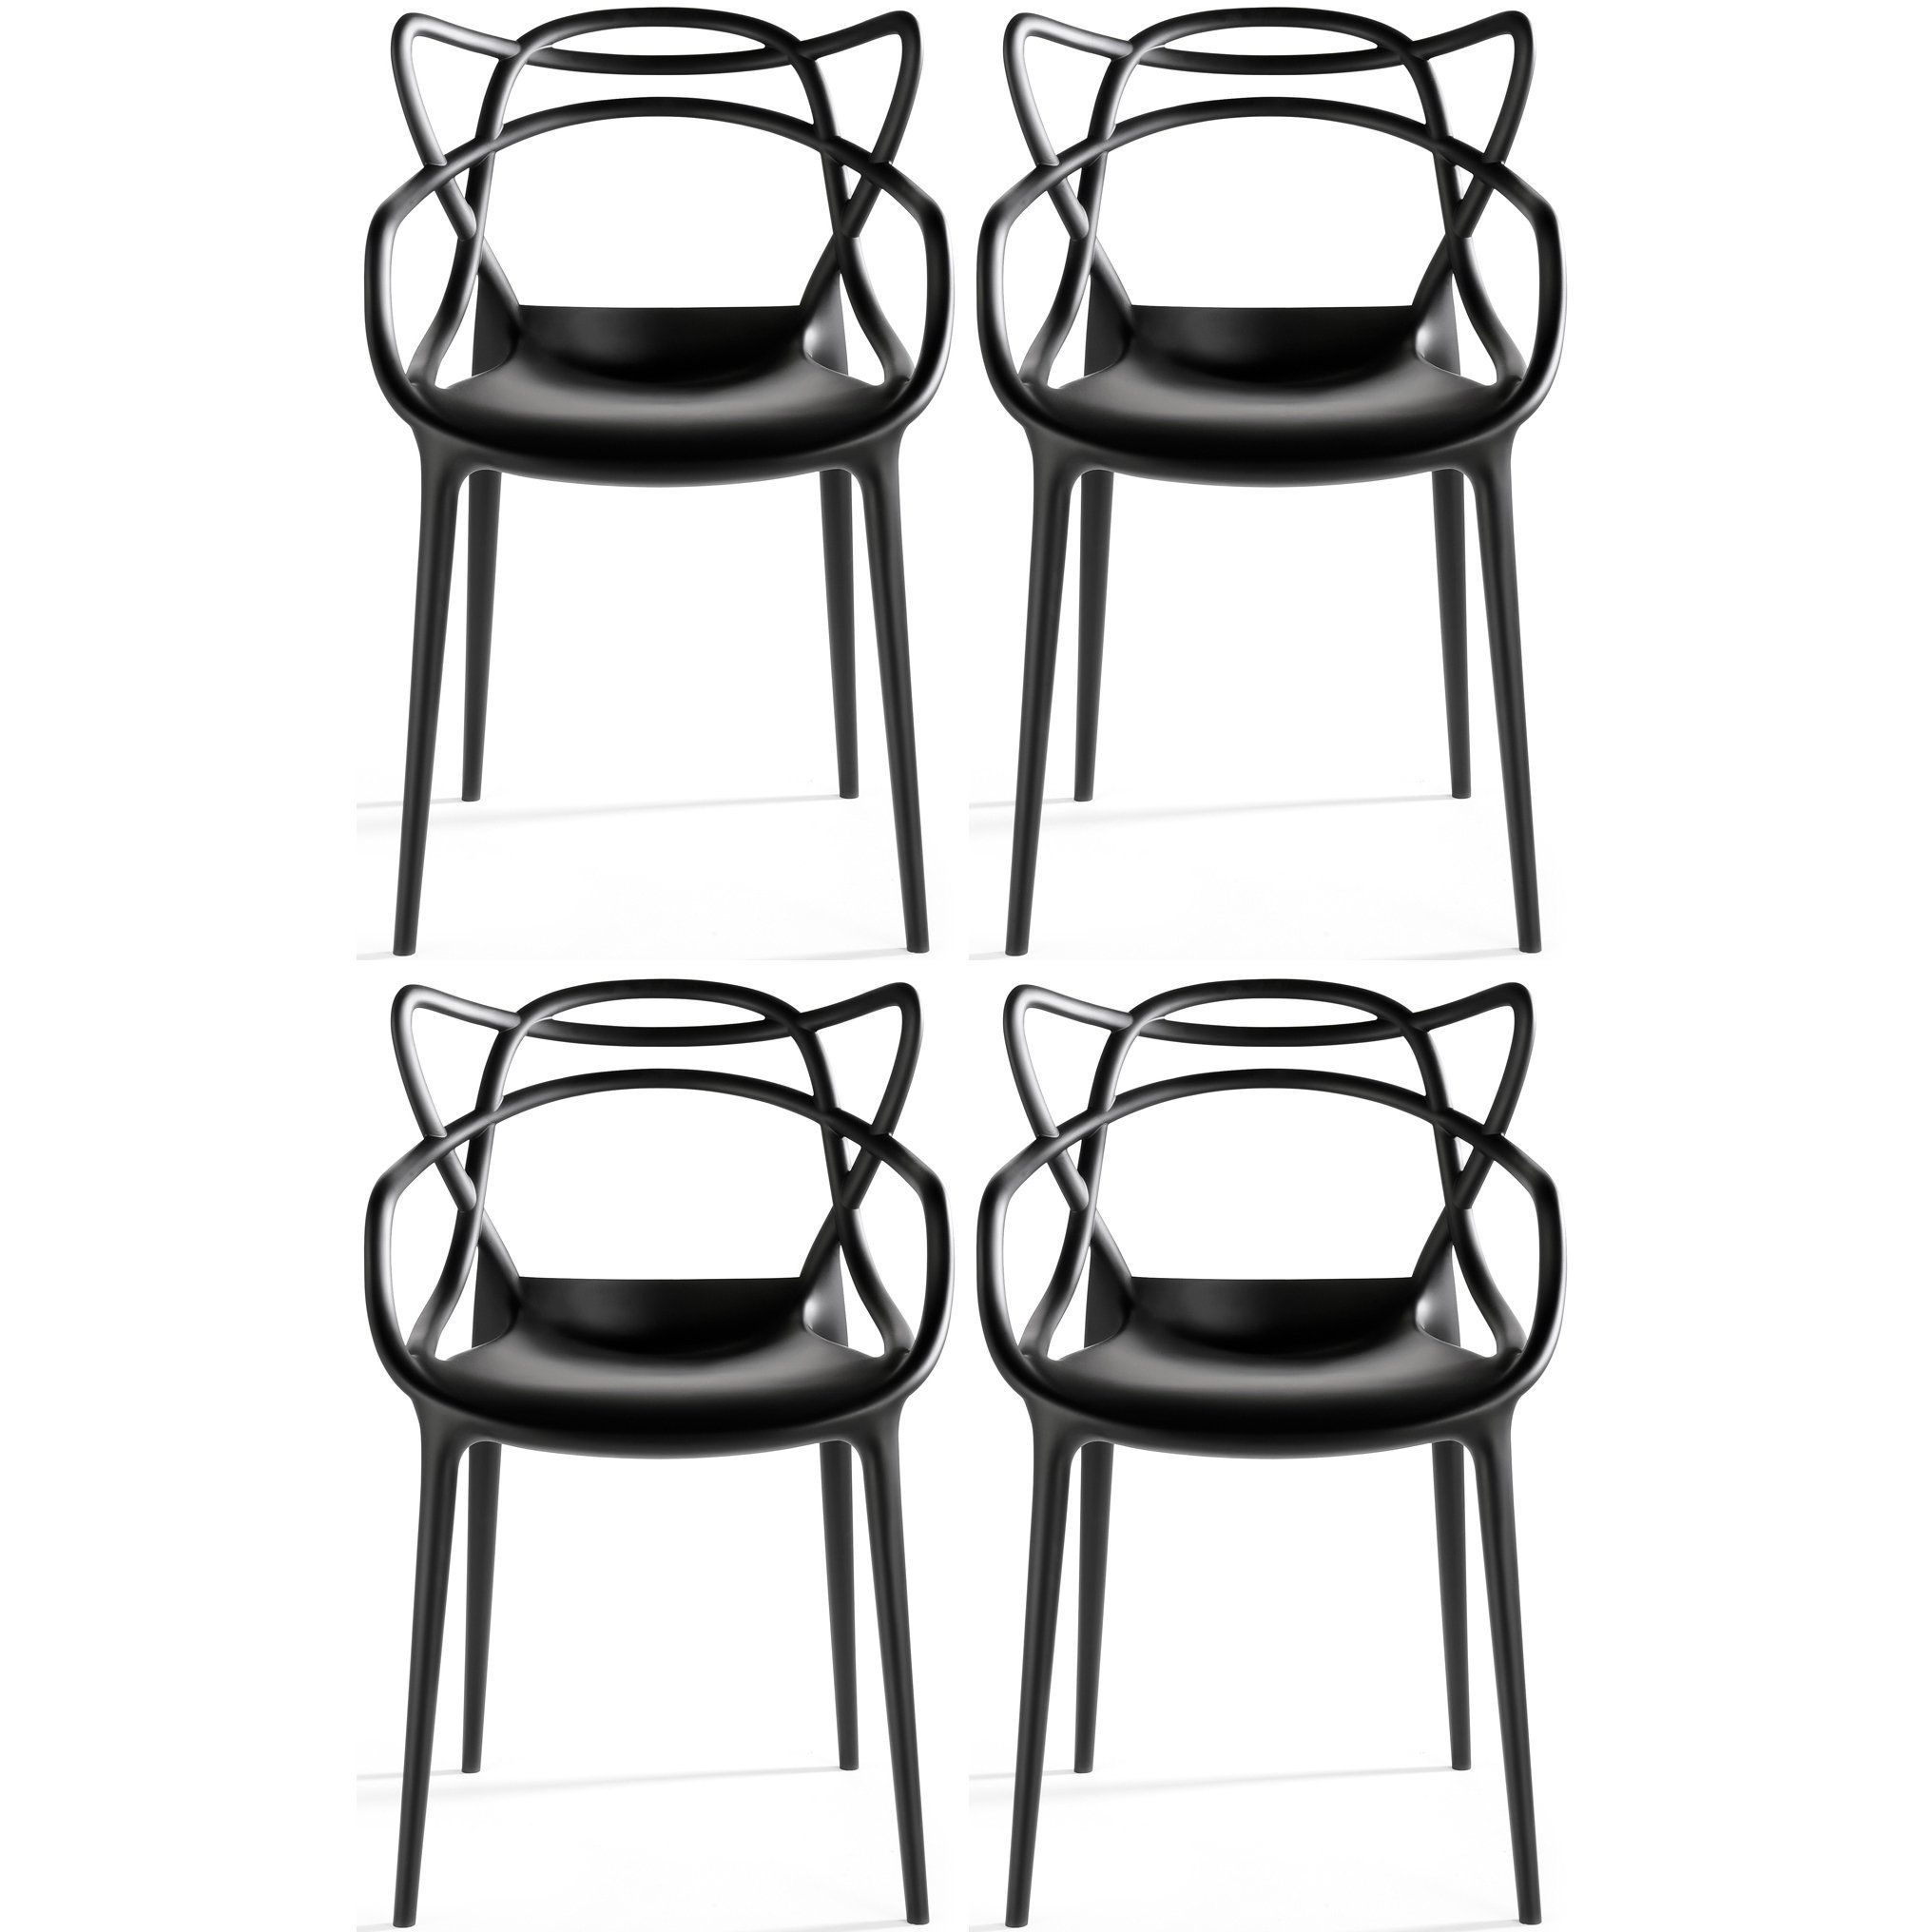 Xhome set of black dining room chairs modern contemporary